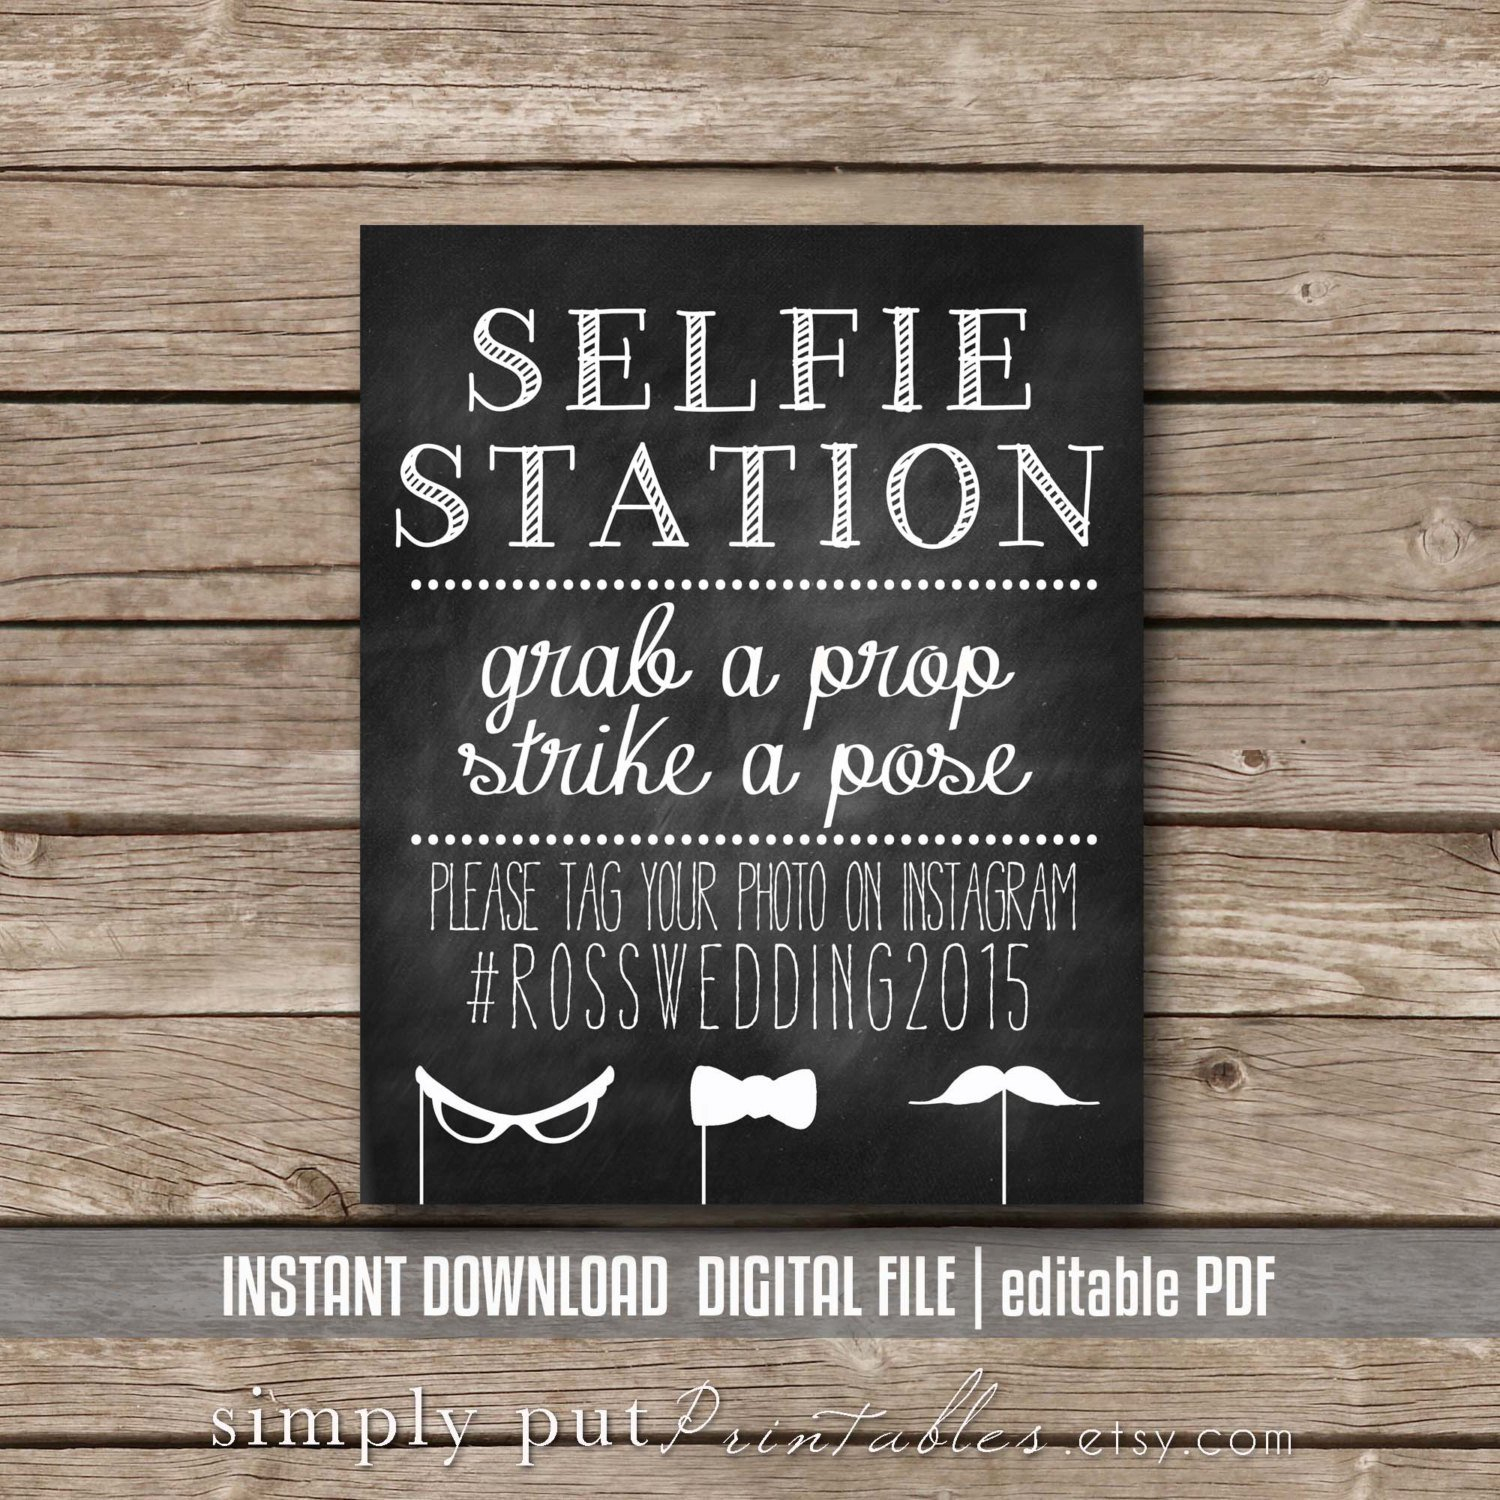 Selfie Station Photo Booth Chalkboard Sign Printable Grab A | Etsy - Selfie Station Free Printable